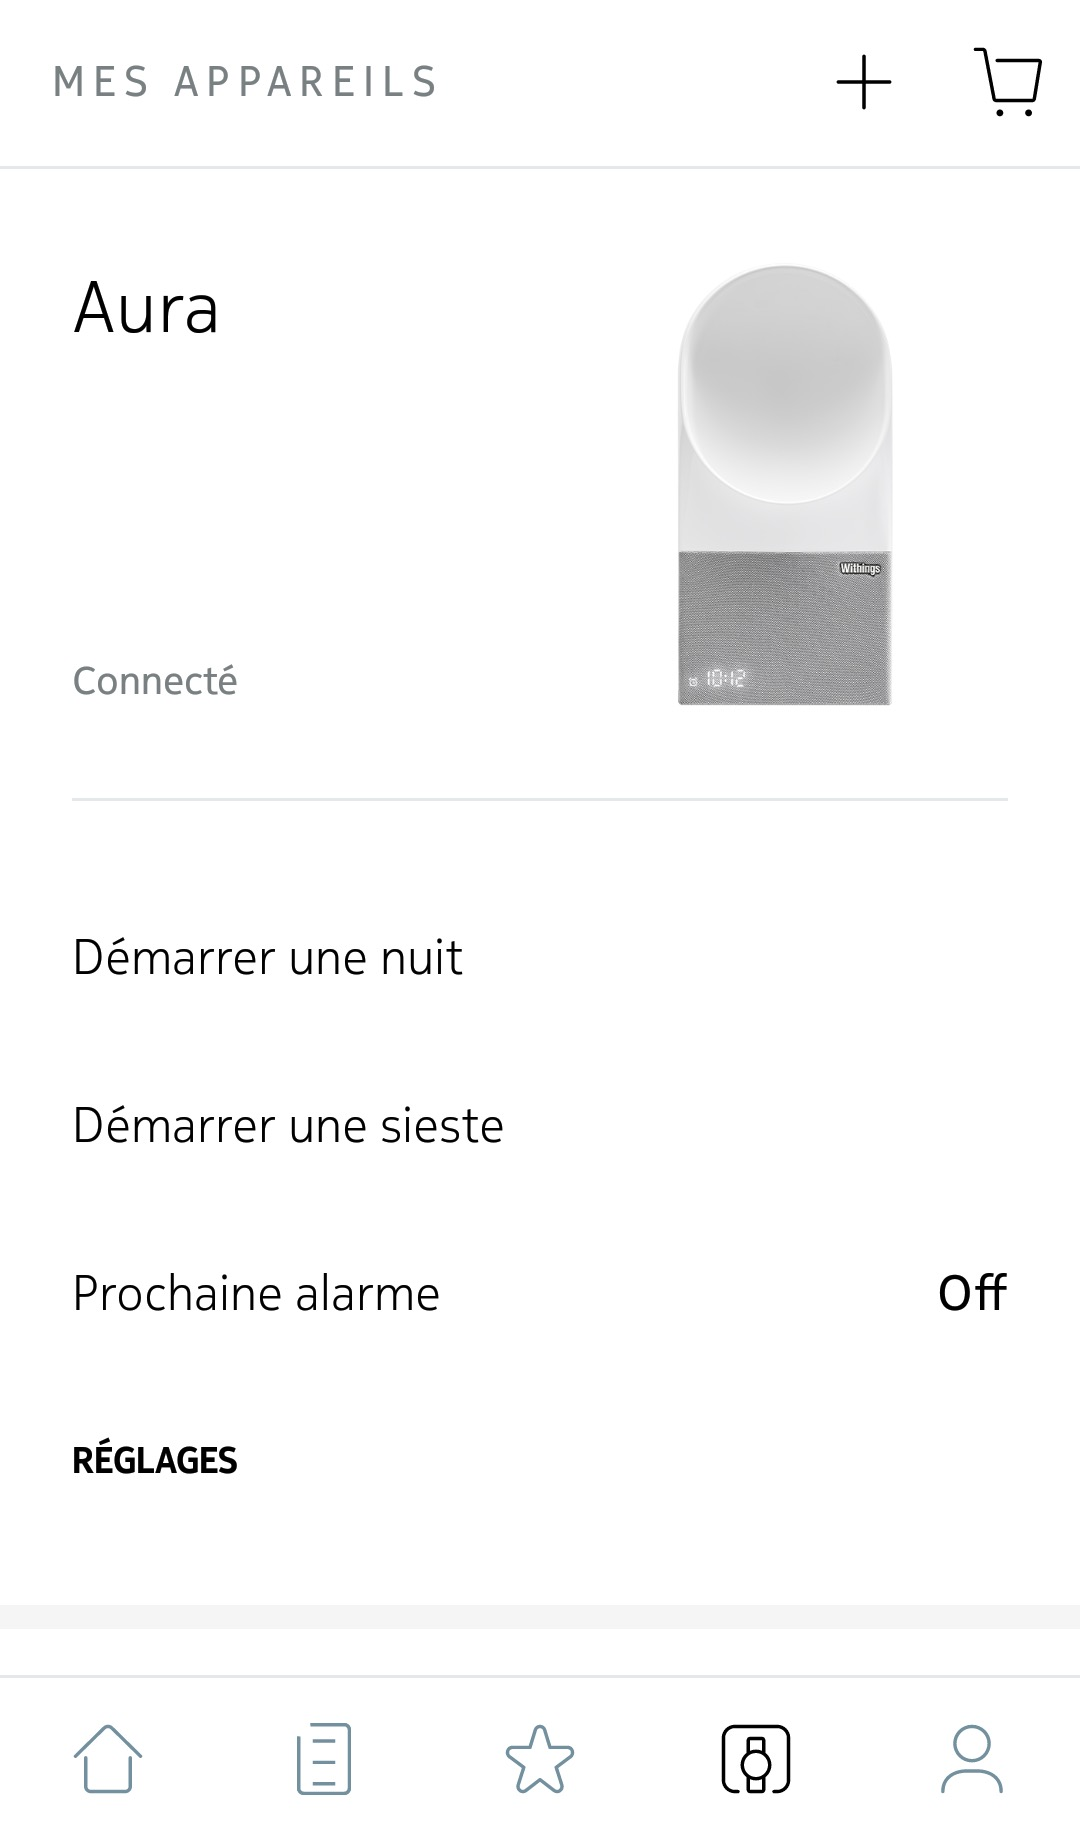 HM_Android_devices_Aura_fr.jpg